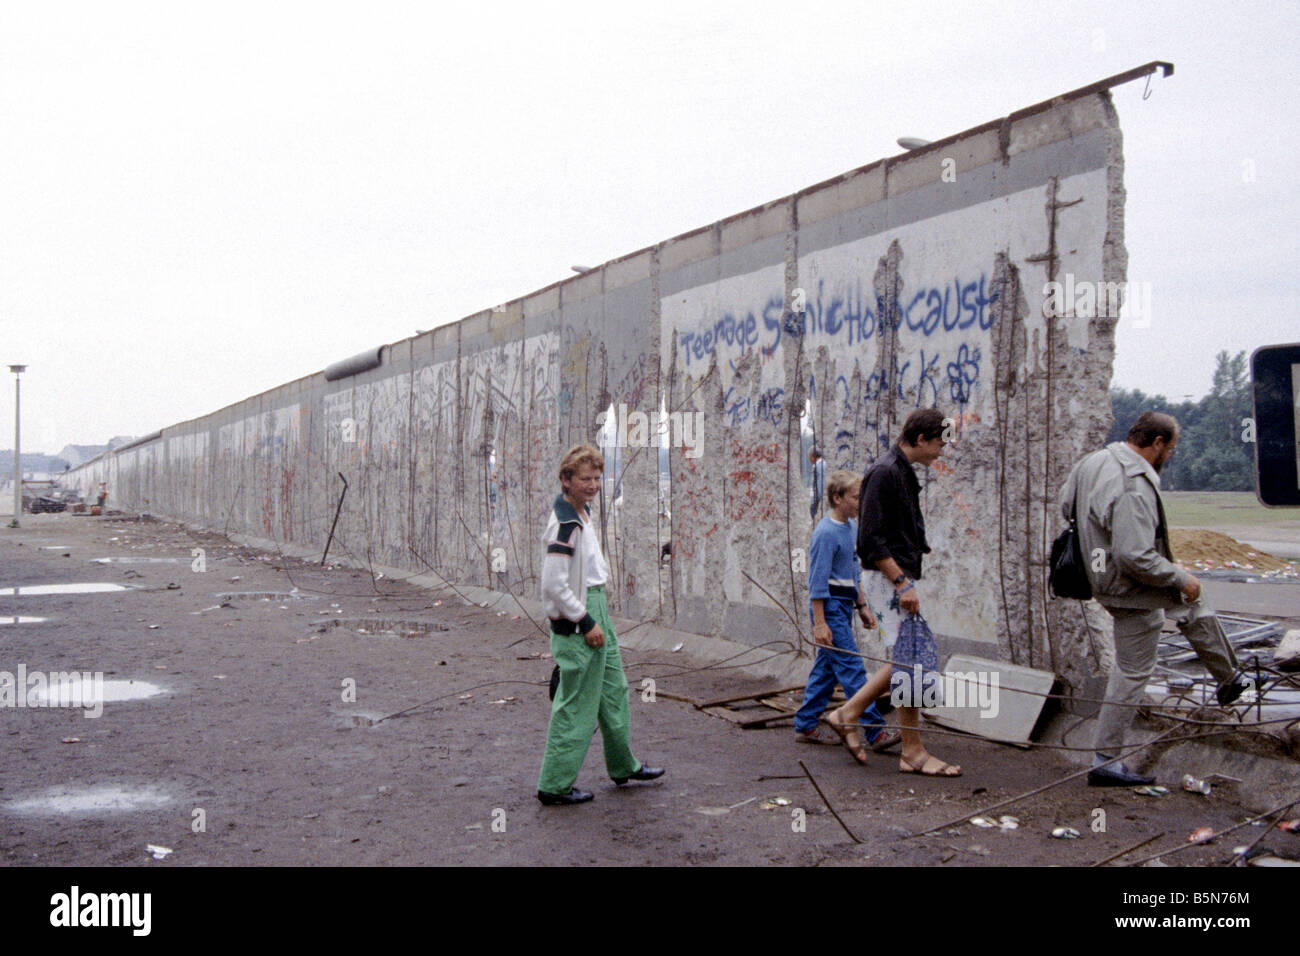 a family crossing through the berlin wall near the brandenburg gate stock photo 20750316 alamy. Black Bedroom Furniture Sets. Home Design Ideas